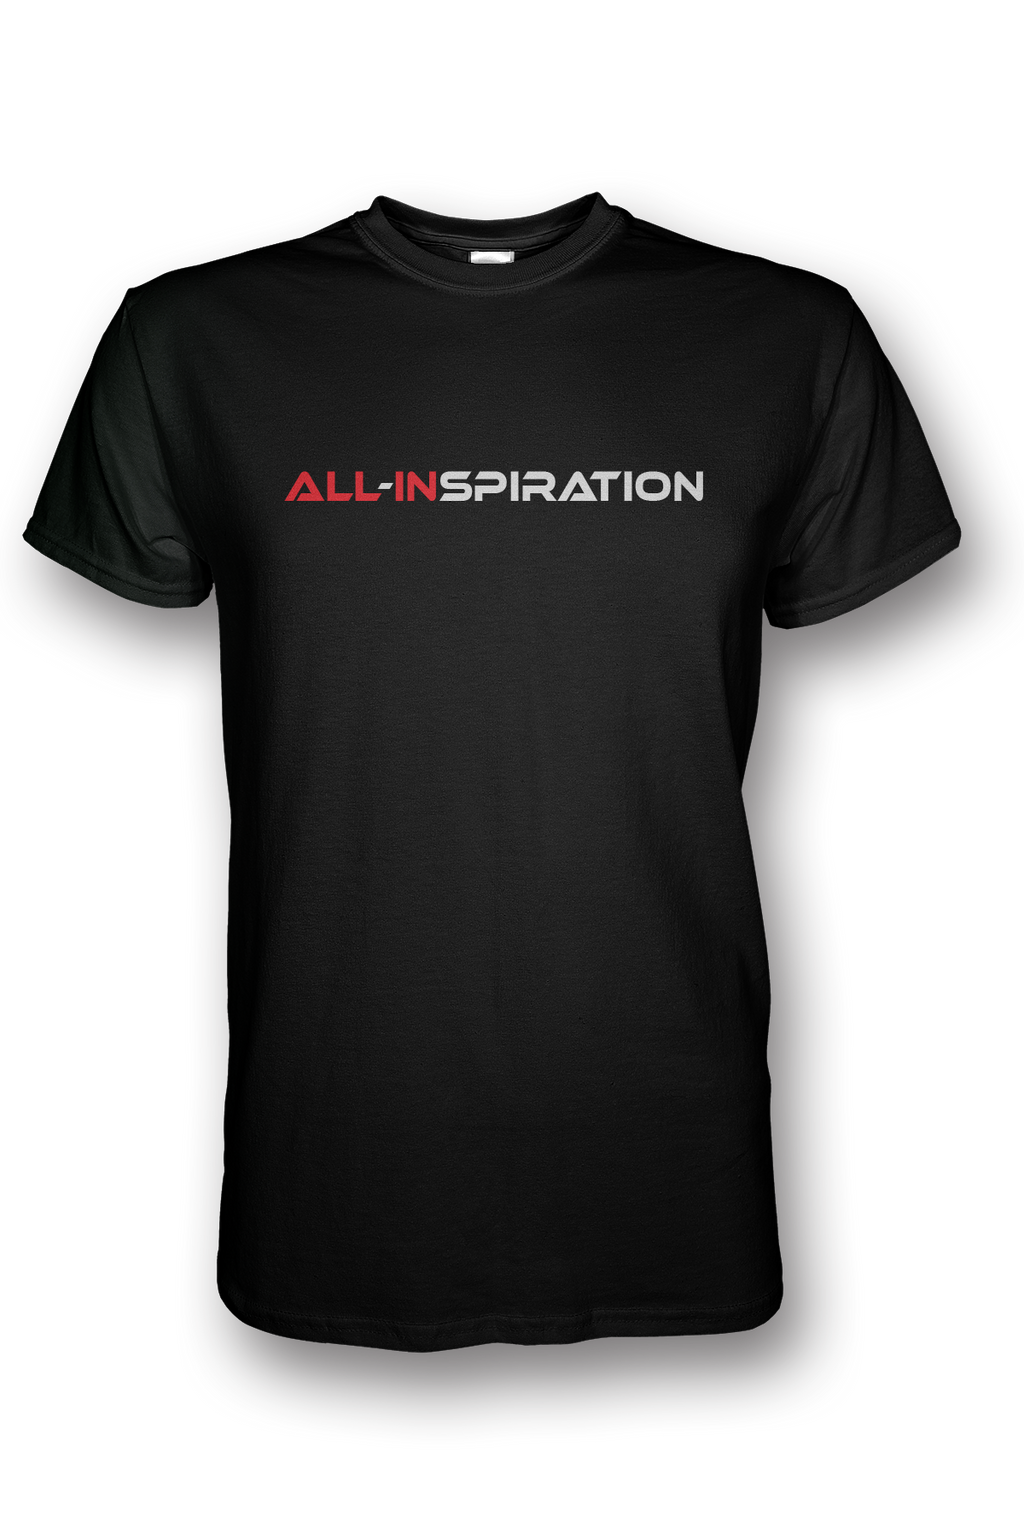 All-Inspiration Text T-Shirt